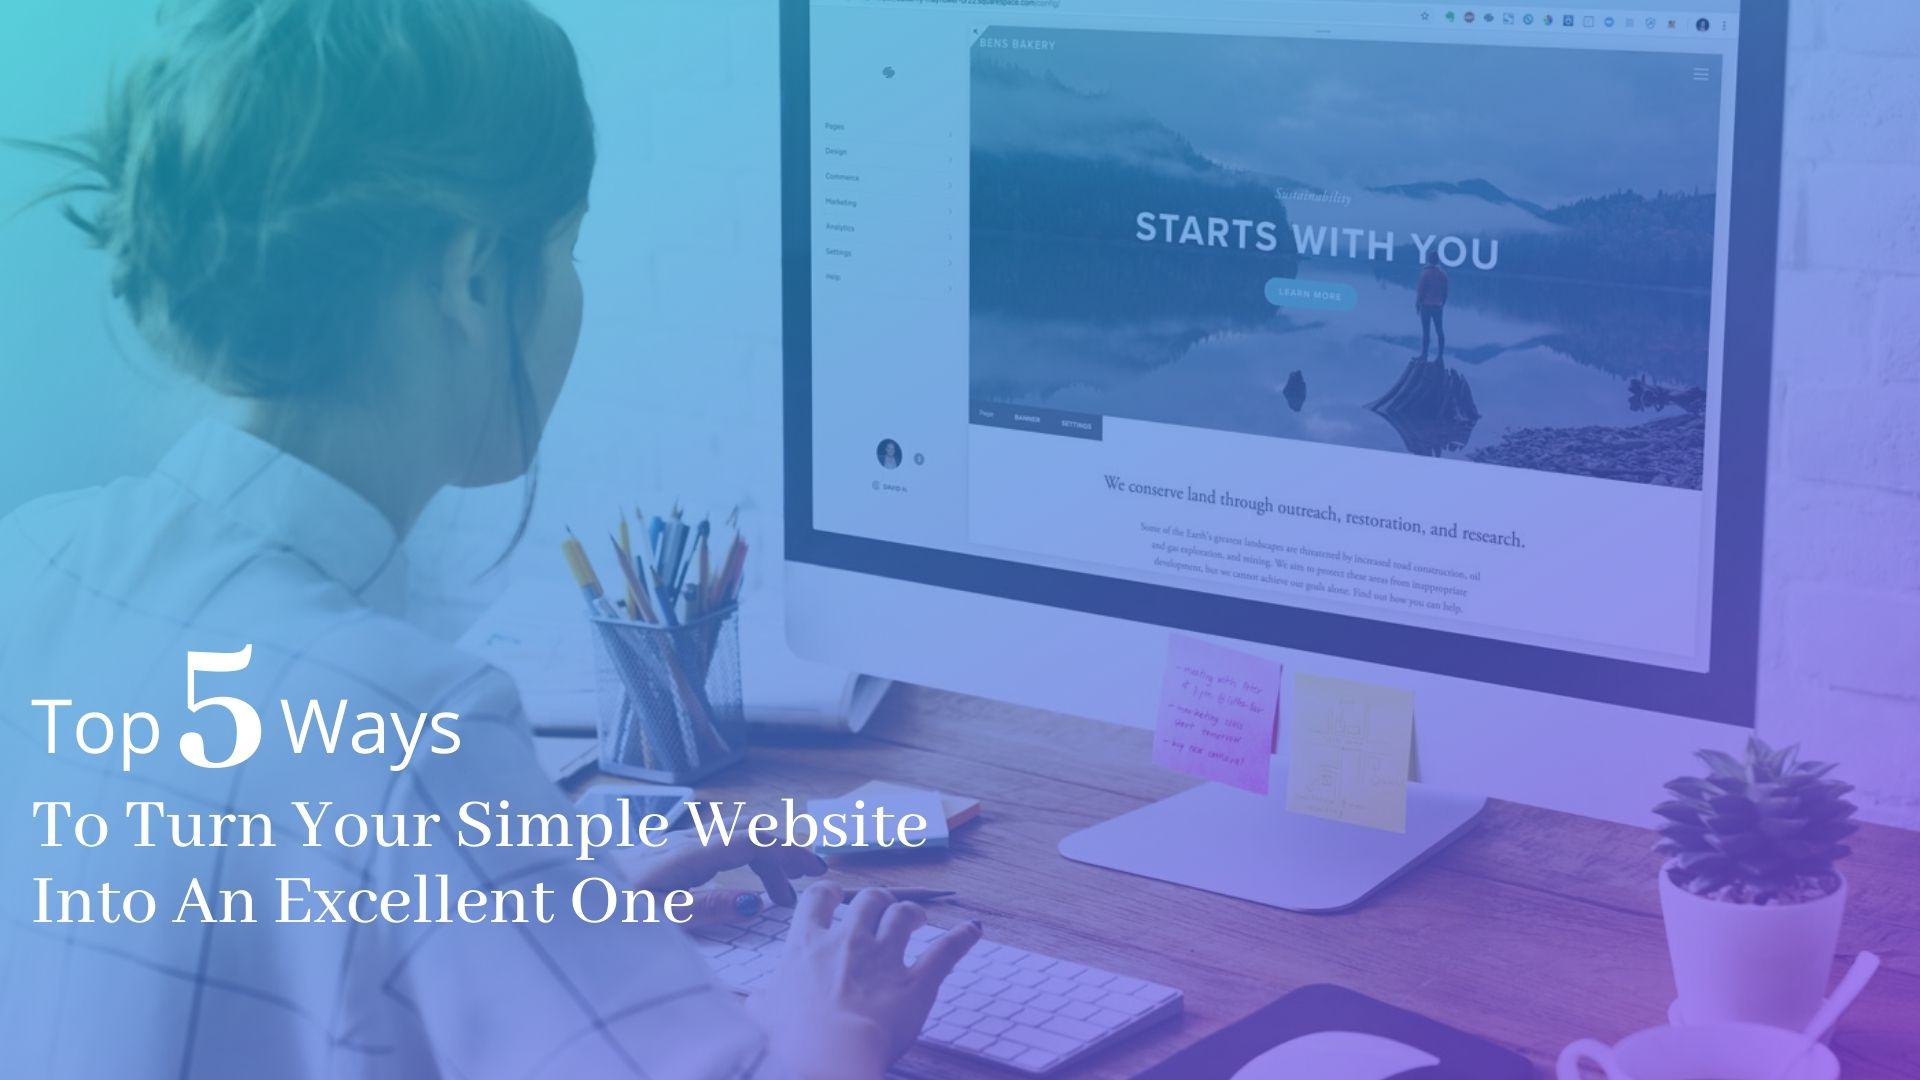 Top 5 Ways To Turn Your Simple Website Into An Excellent One